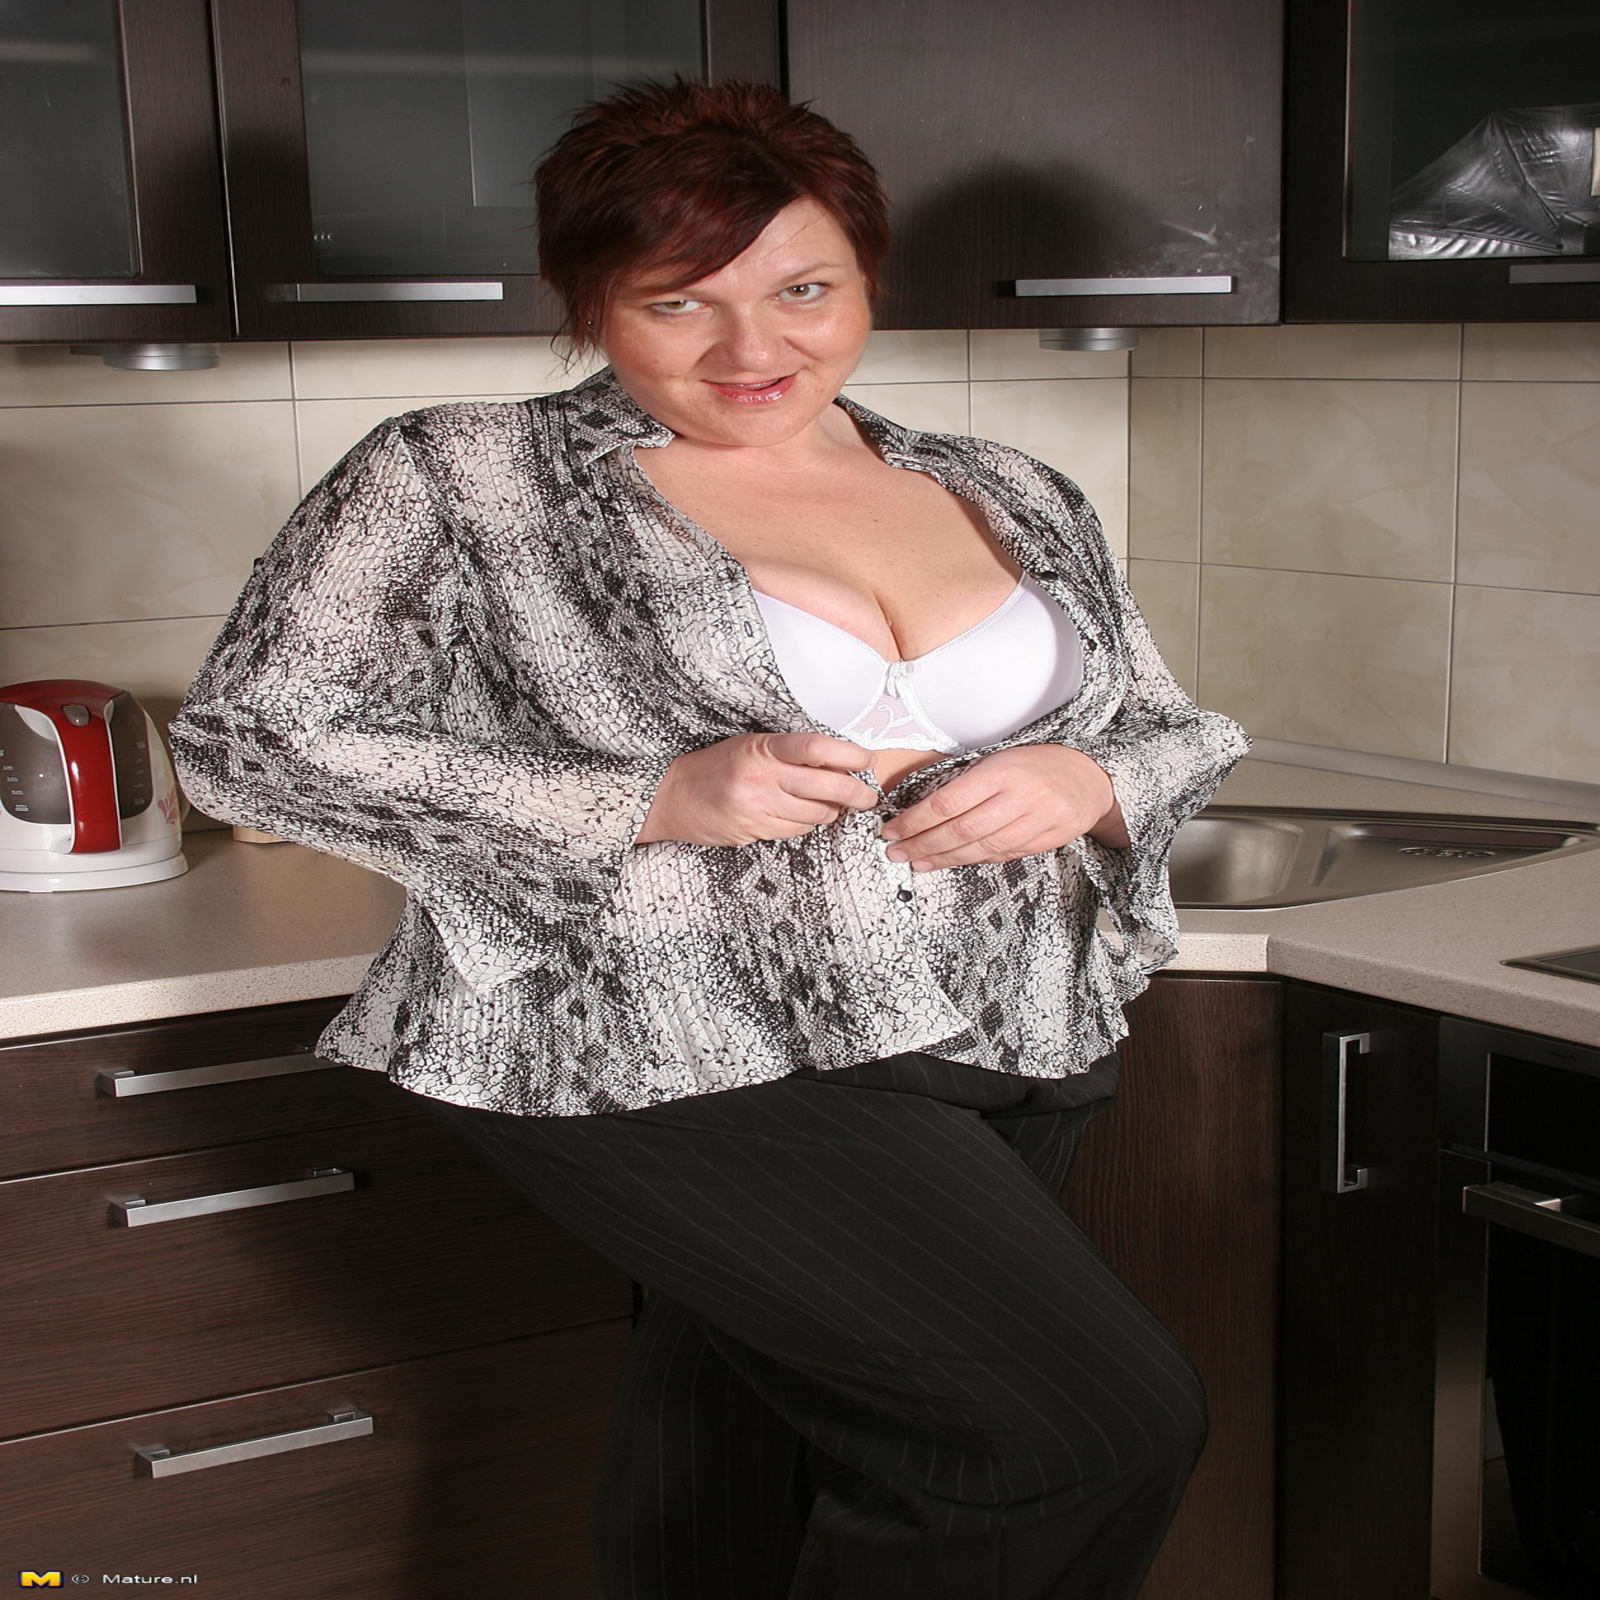 sex in kitchen big ass mature lady playing in the kitchen with her pussy